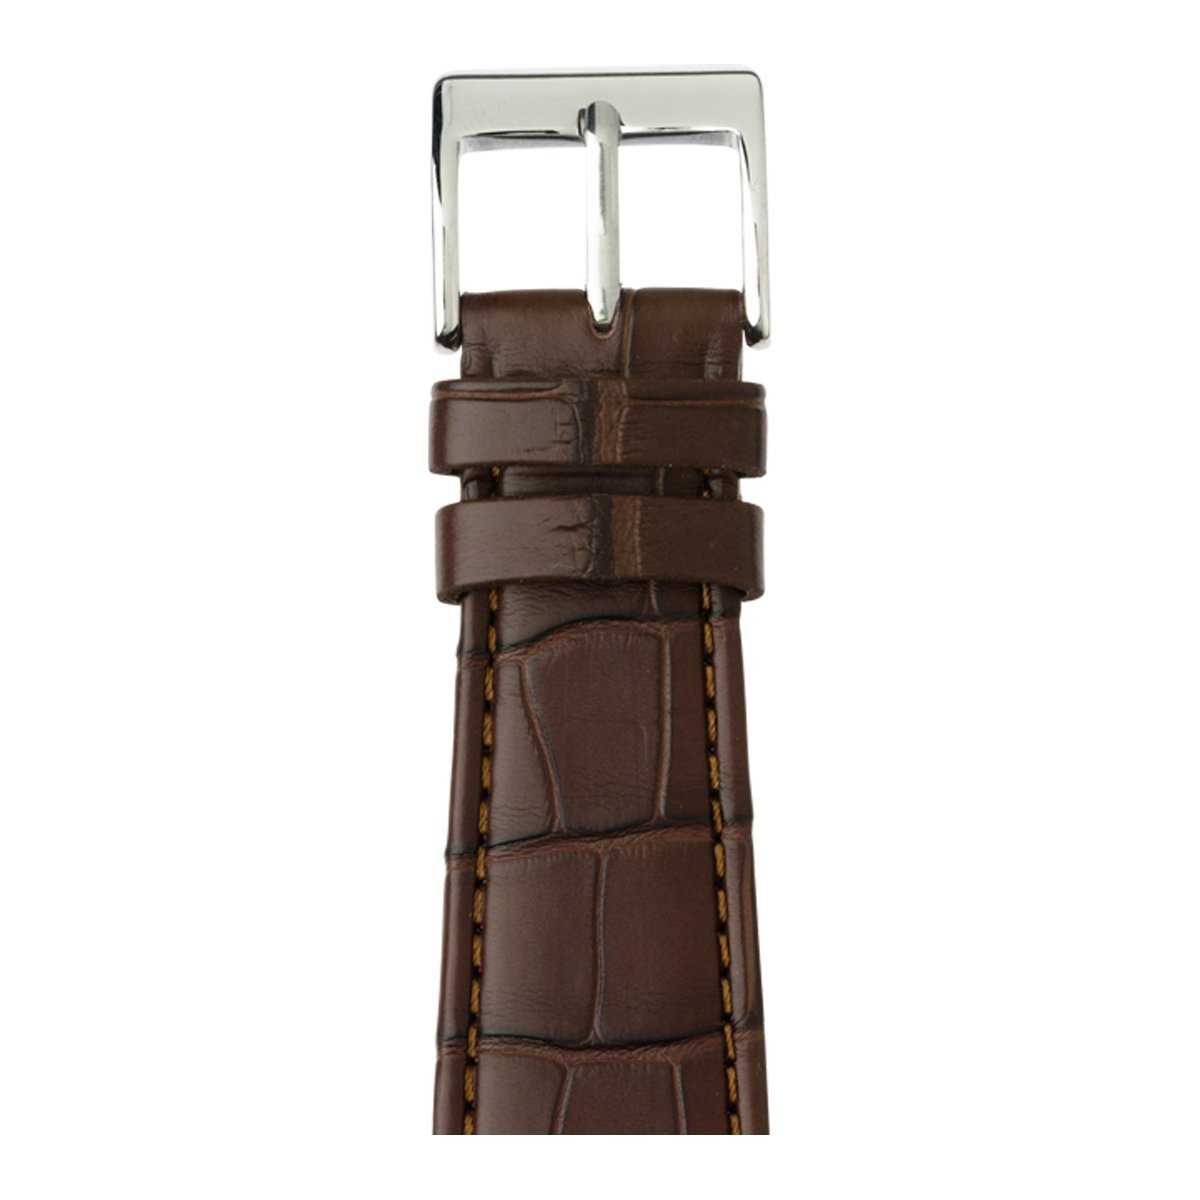 Roobaya   Premium Alligator Leather Apple Watch Band in Dark Brown   Includes Adapters matching the Color of the Apple Watch, Case Color:Stainless Steel, Size:42 mm